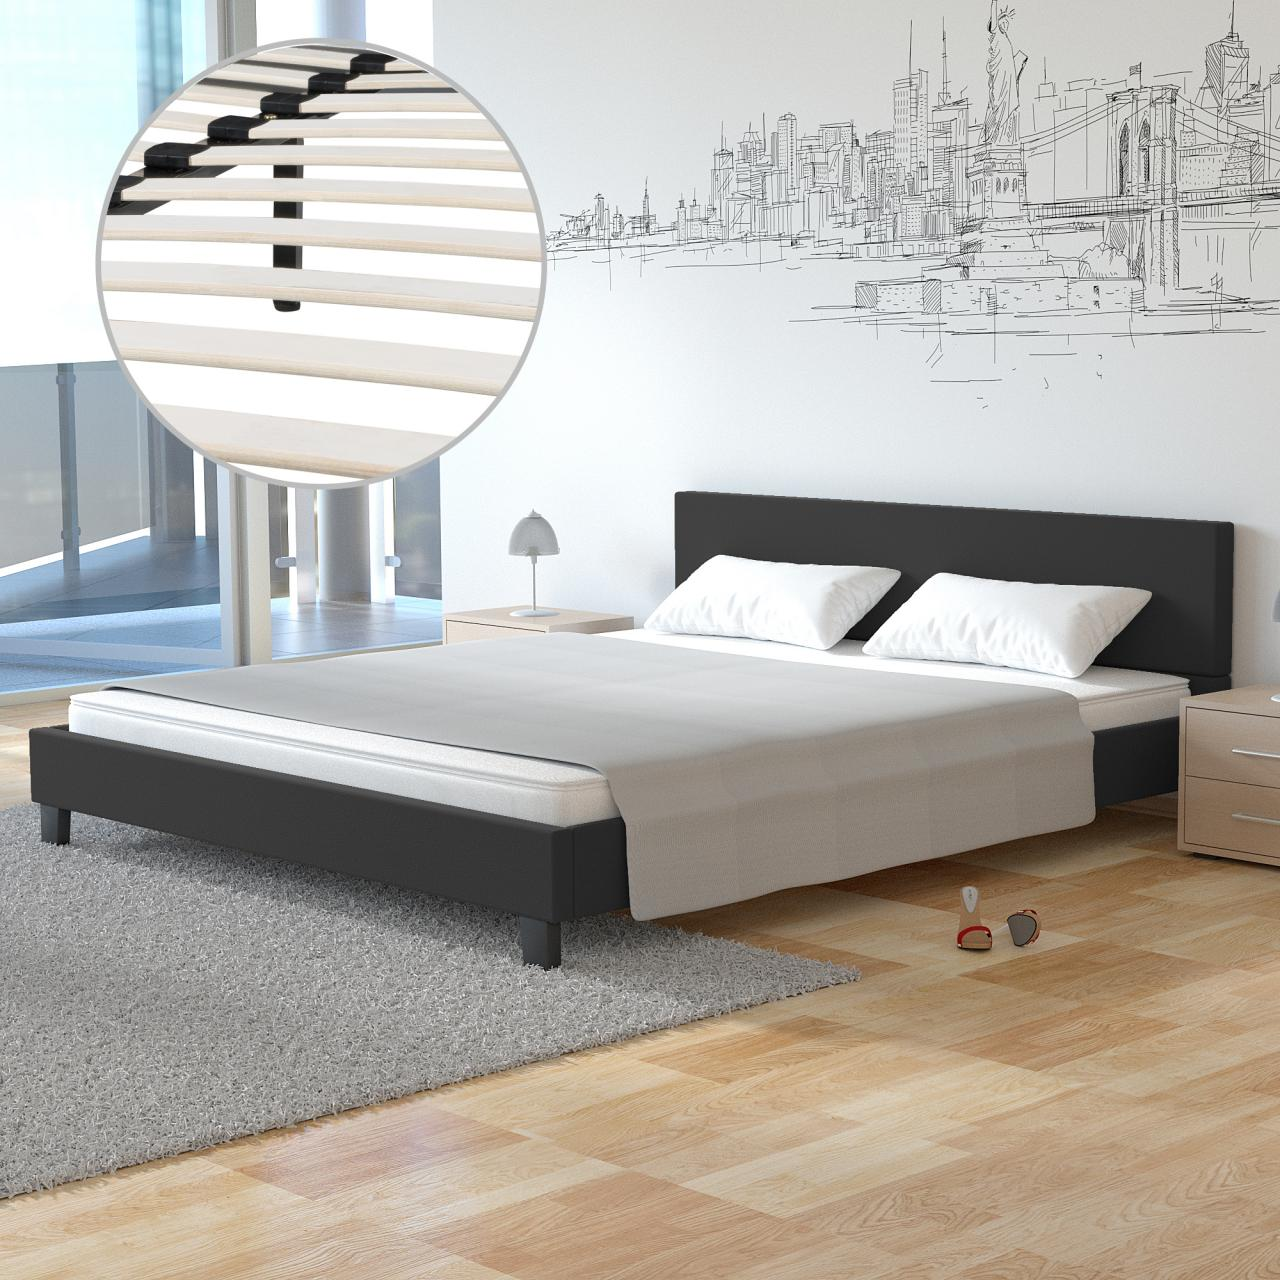 polsterbett doppelbett bettgestell bettrahmen kunstlederbett bett mit lattenrost ebay. Black Bedroom Furniture Sets. Home Design Ideas